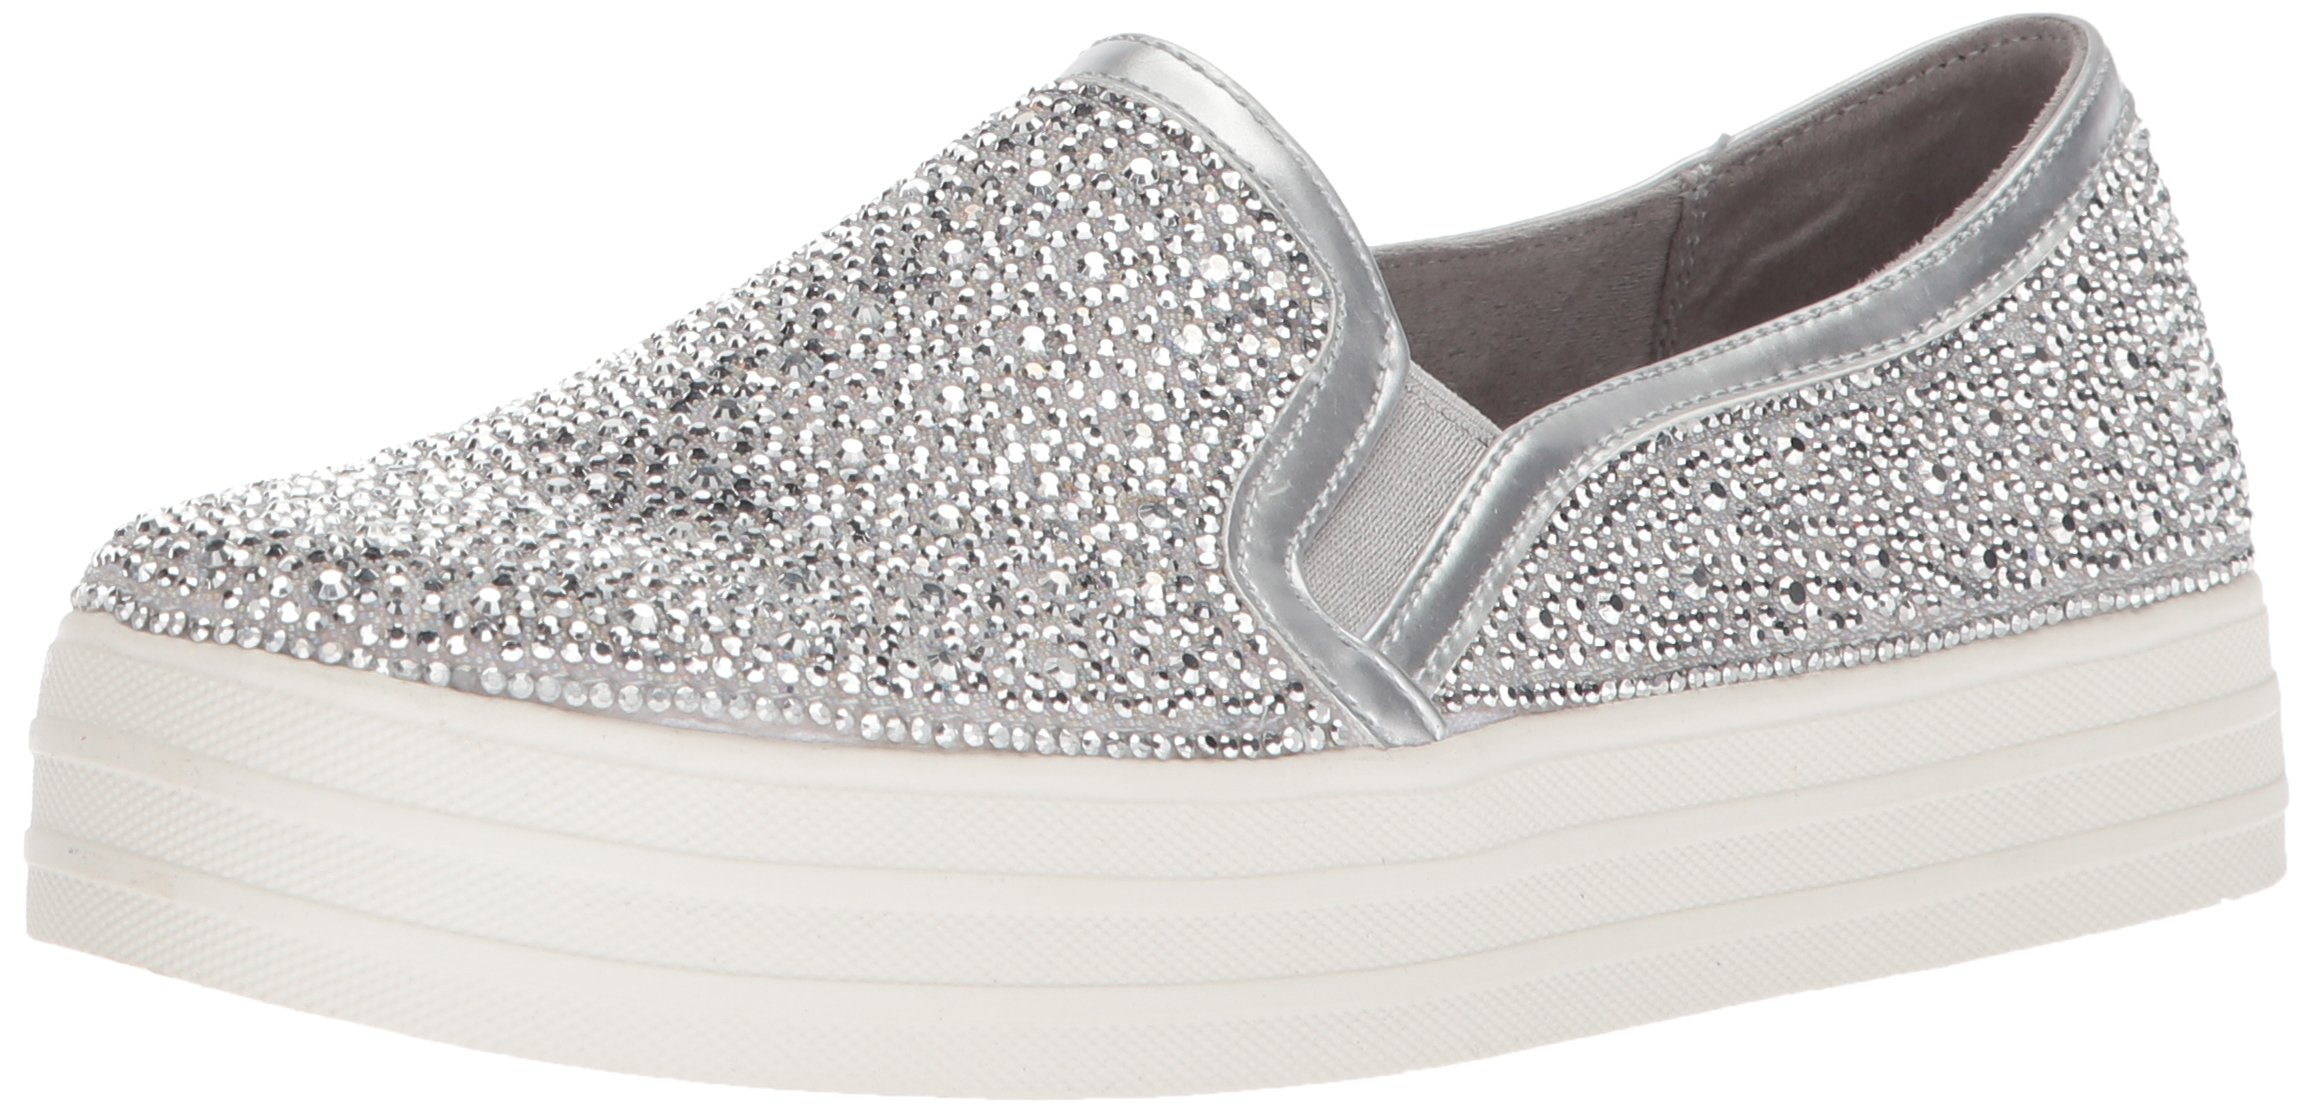 Skechers FemmeArgentésilver Sil39 Up Enfiler glitzy Double GalBaskets Eu D92IEH